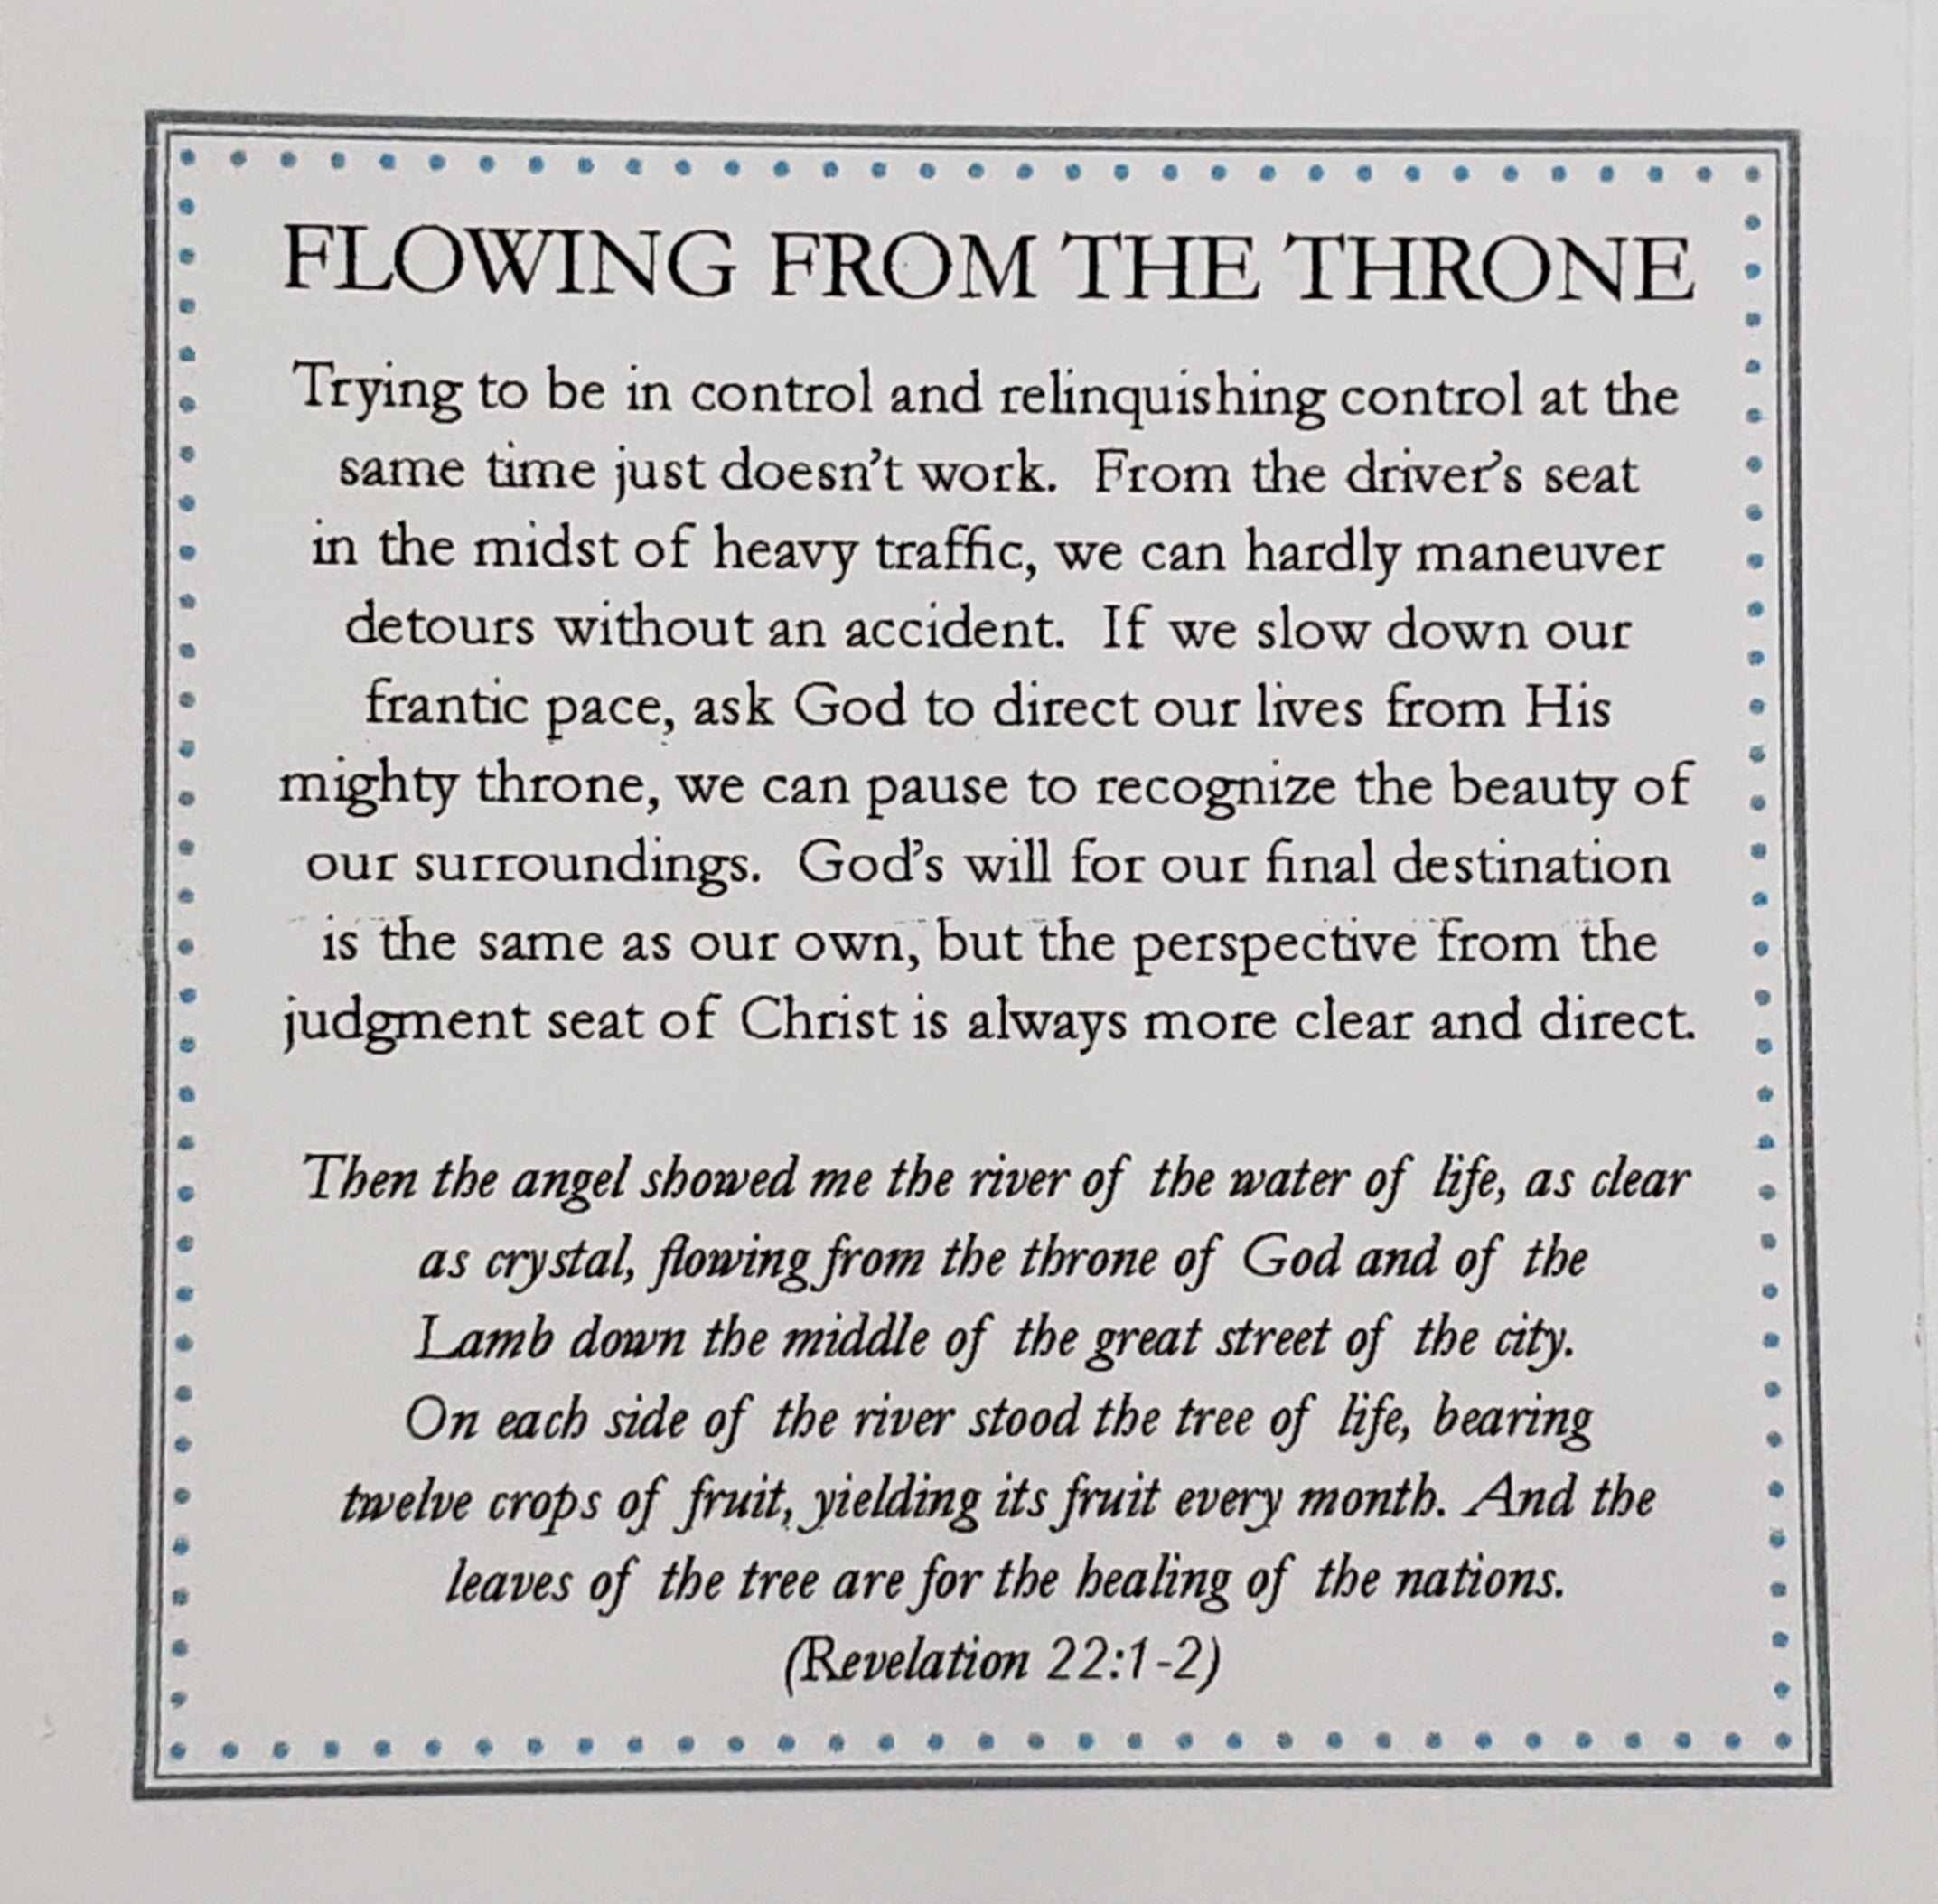 Flowing from the Throne